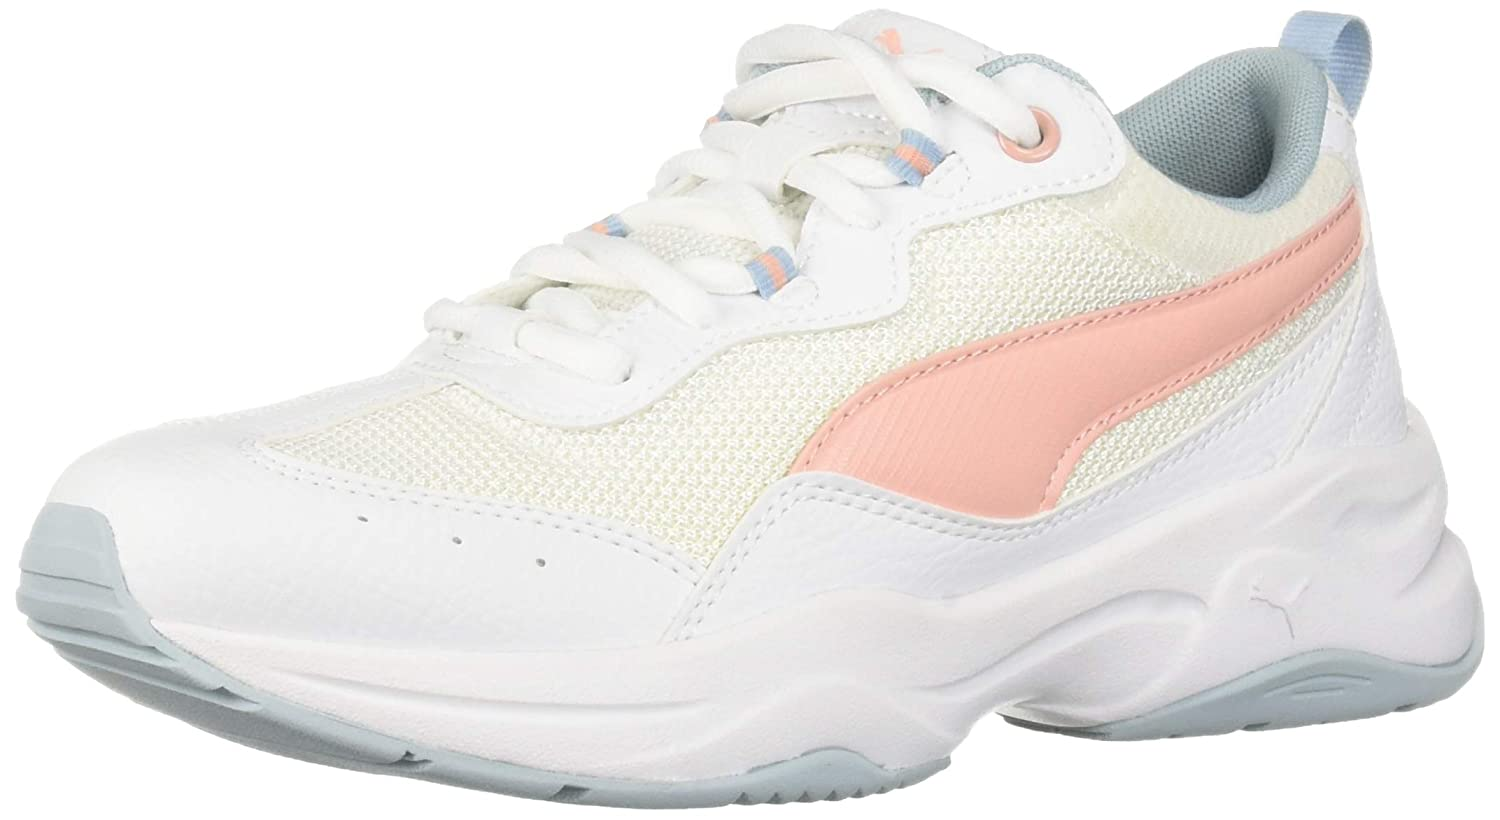 c0aa8b792e3 PUMA Women's Cilia Sneaker, White-Peach Bud-Light Sky, 7 M US